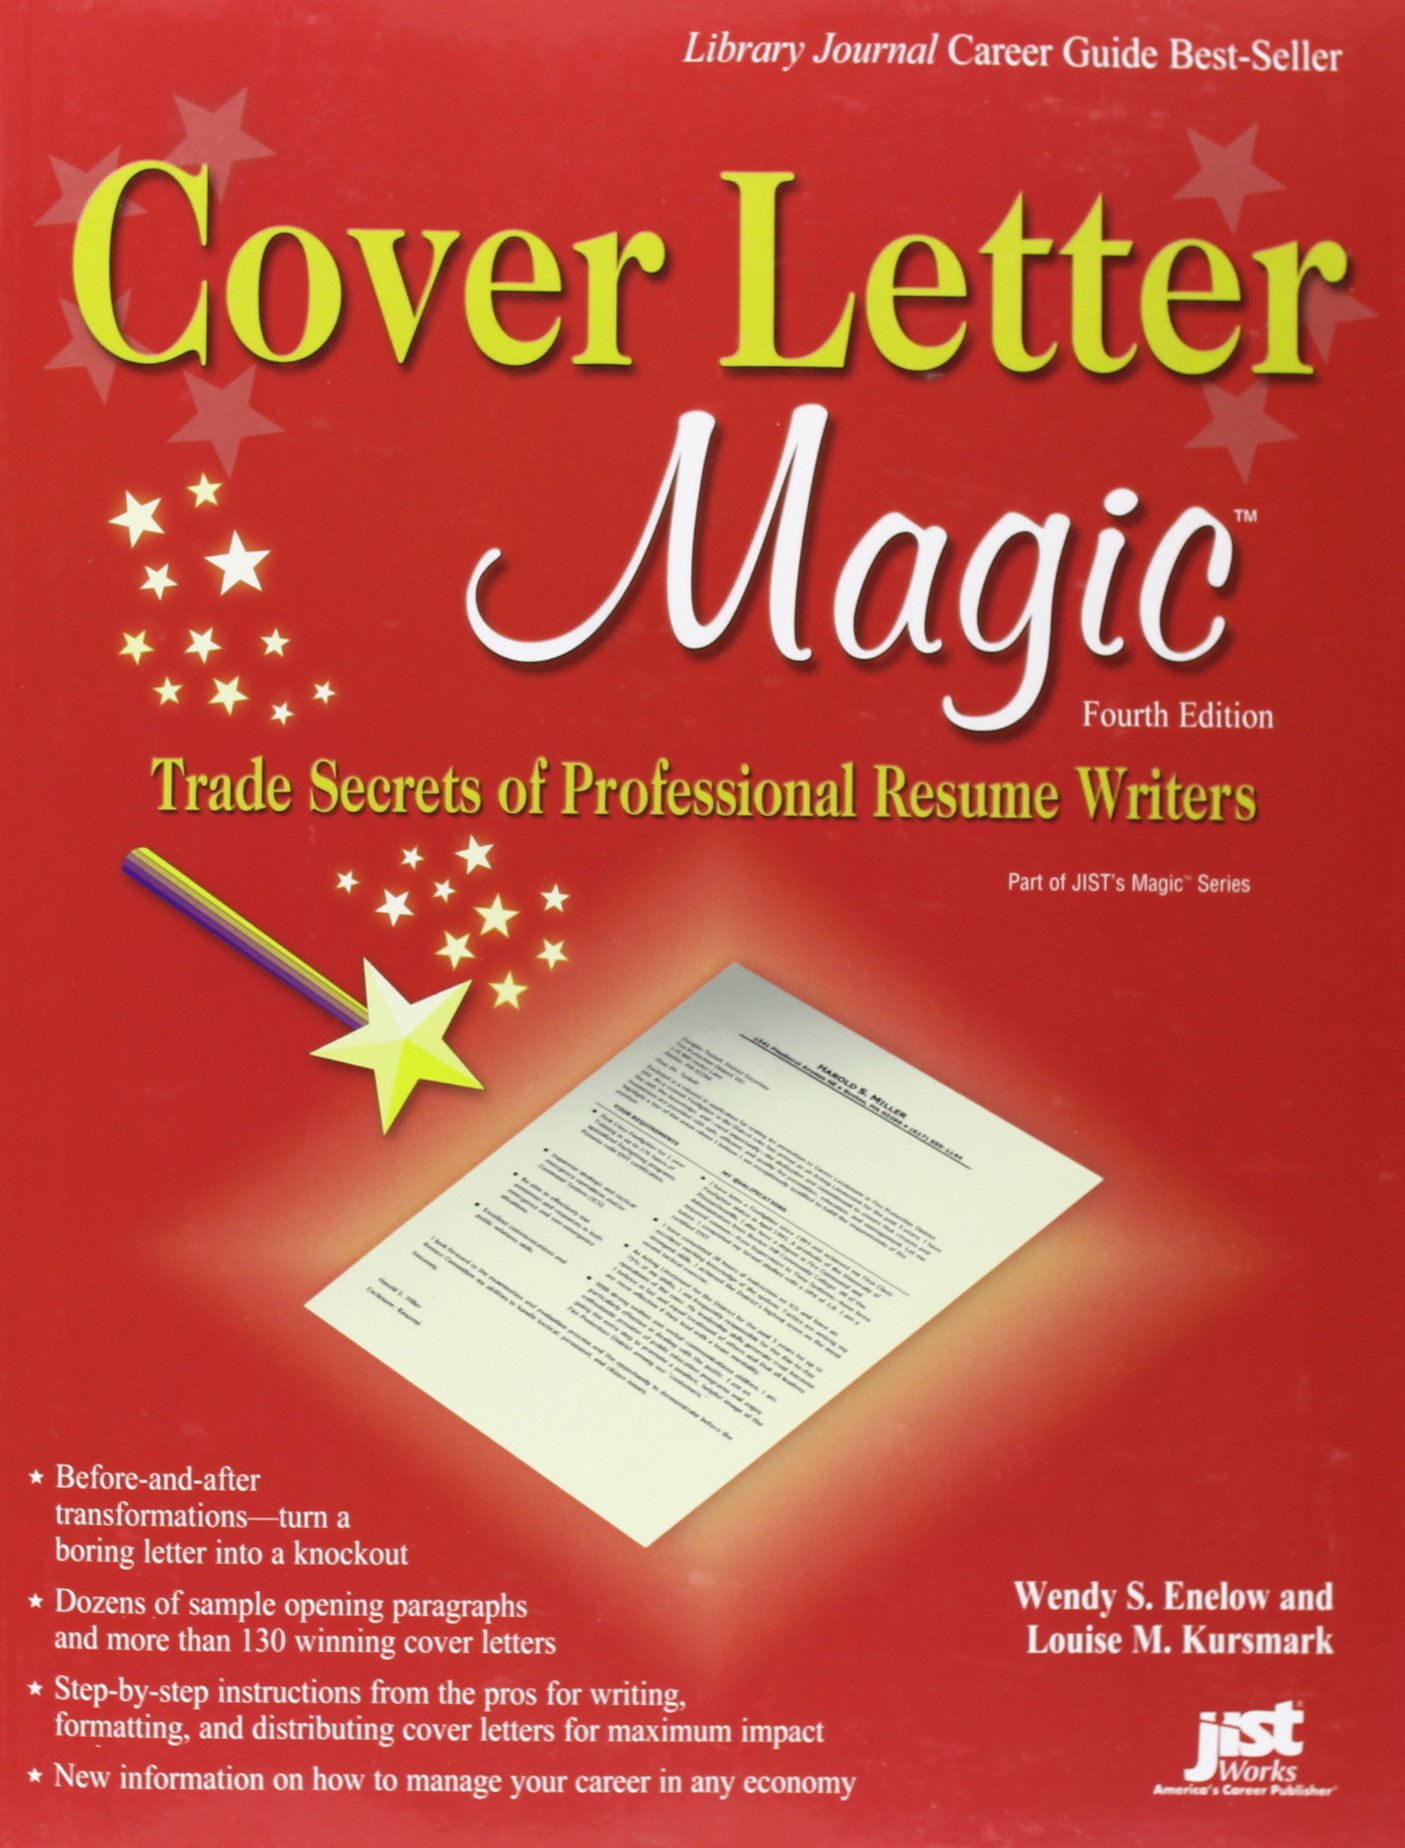 cover letter magic 4th ed trade secrets of professional resume writers wendy s enelow louise m kursmark 9781593577353 amazoncom books - Professional Resume And Cover Letter